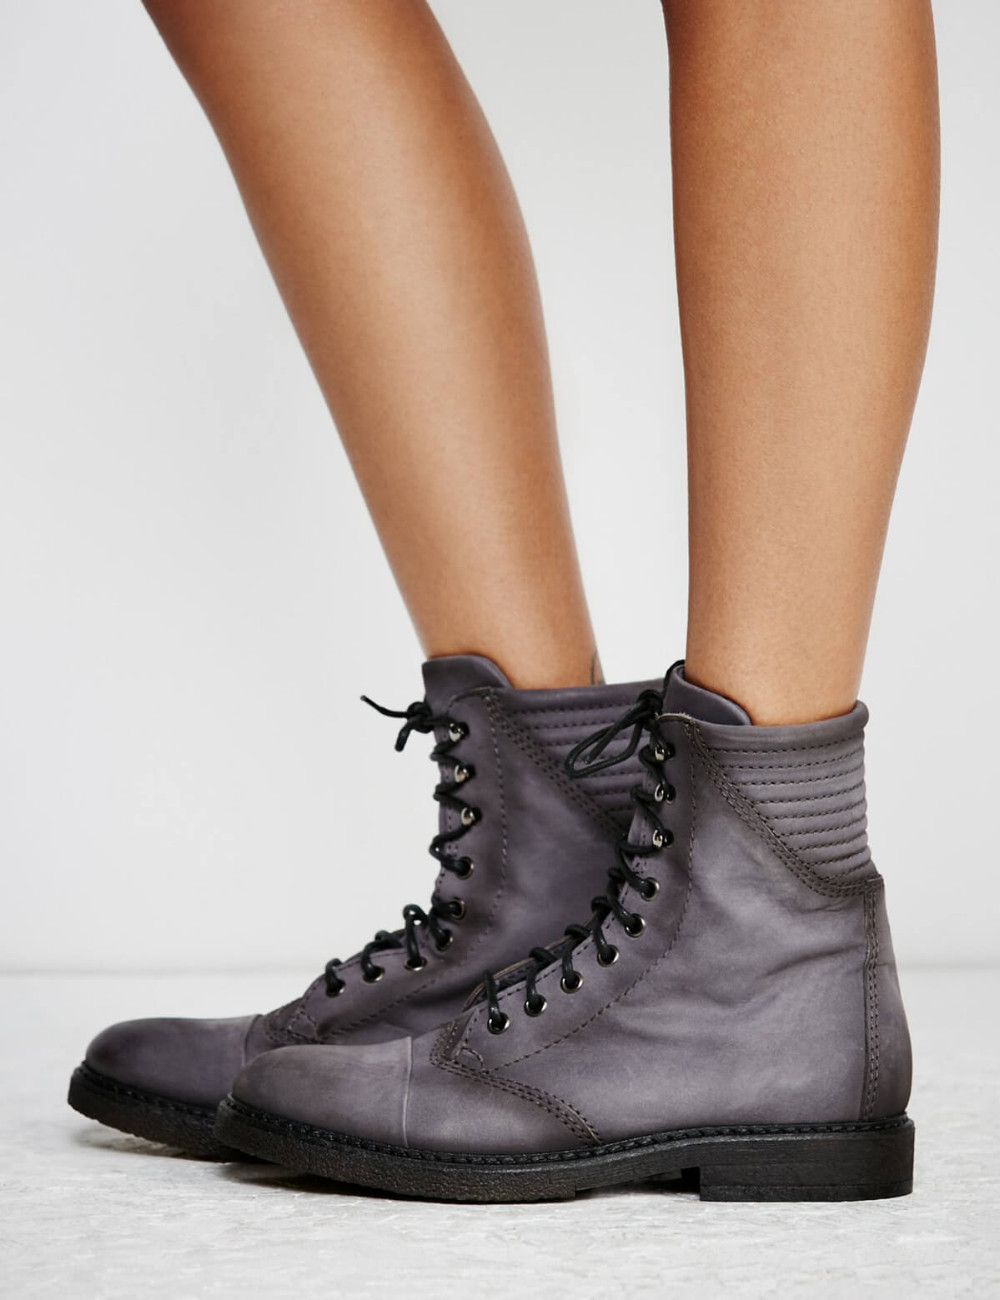 Popular Italian Leather Boots Women-Buy Cheap Italian Leather